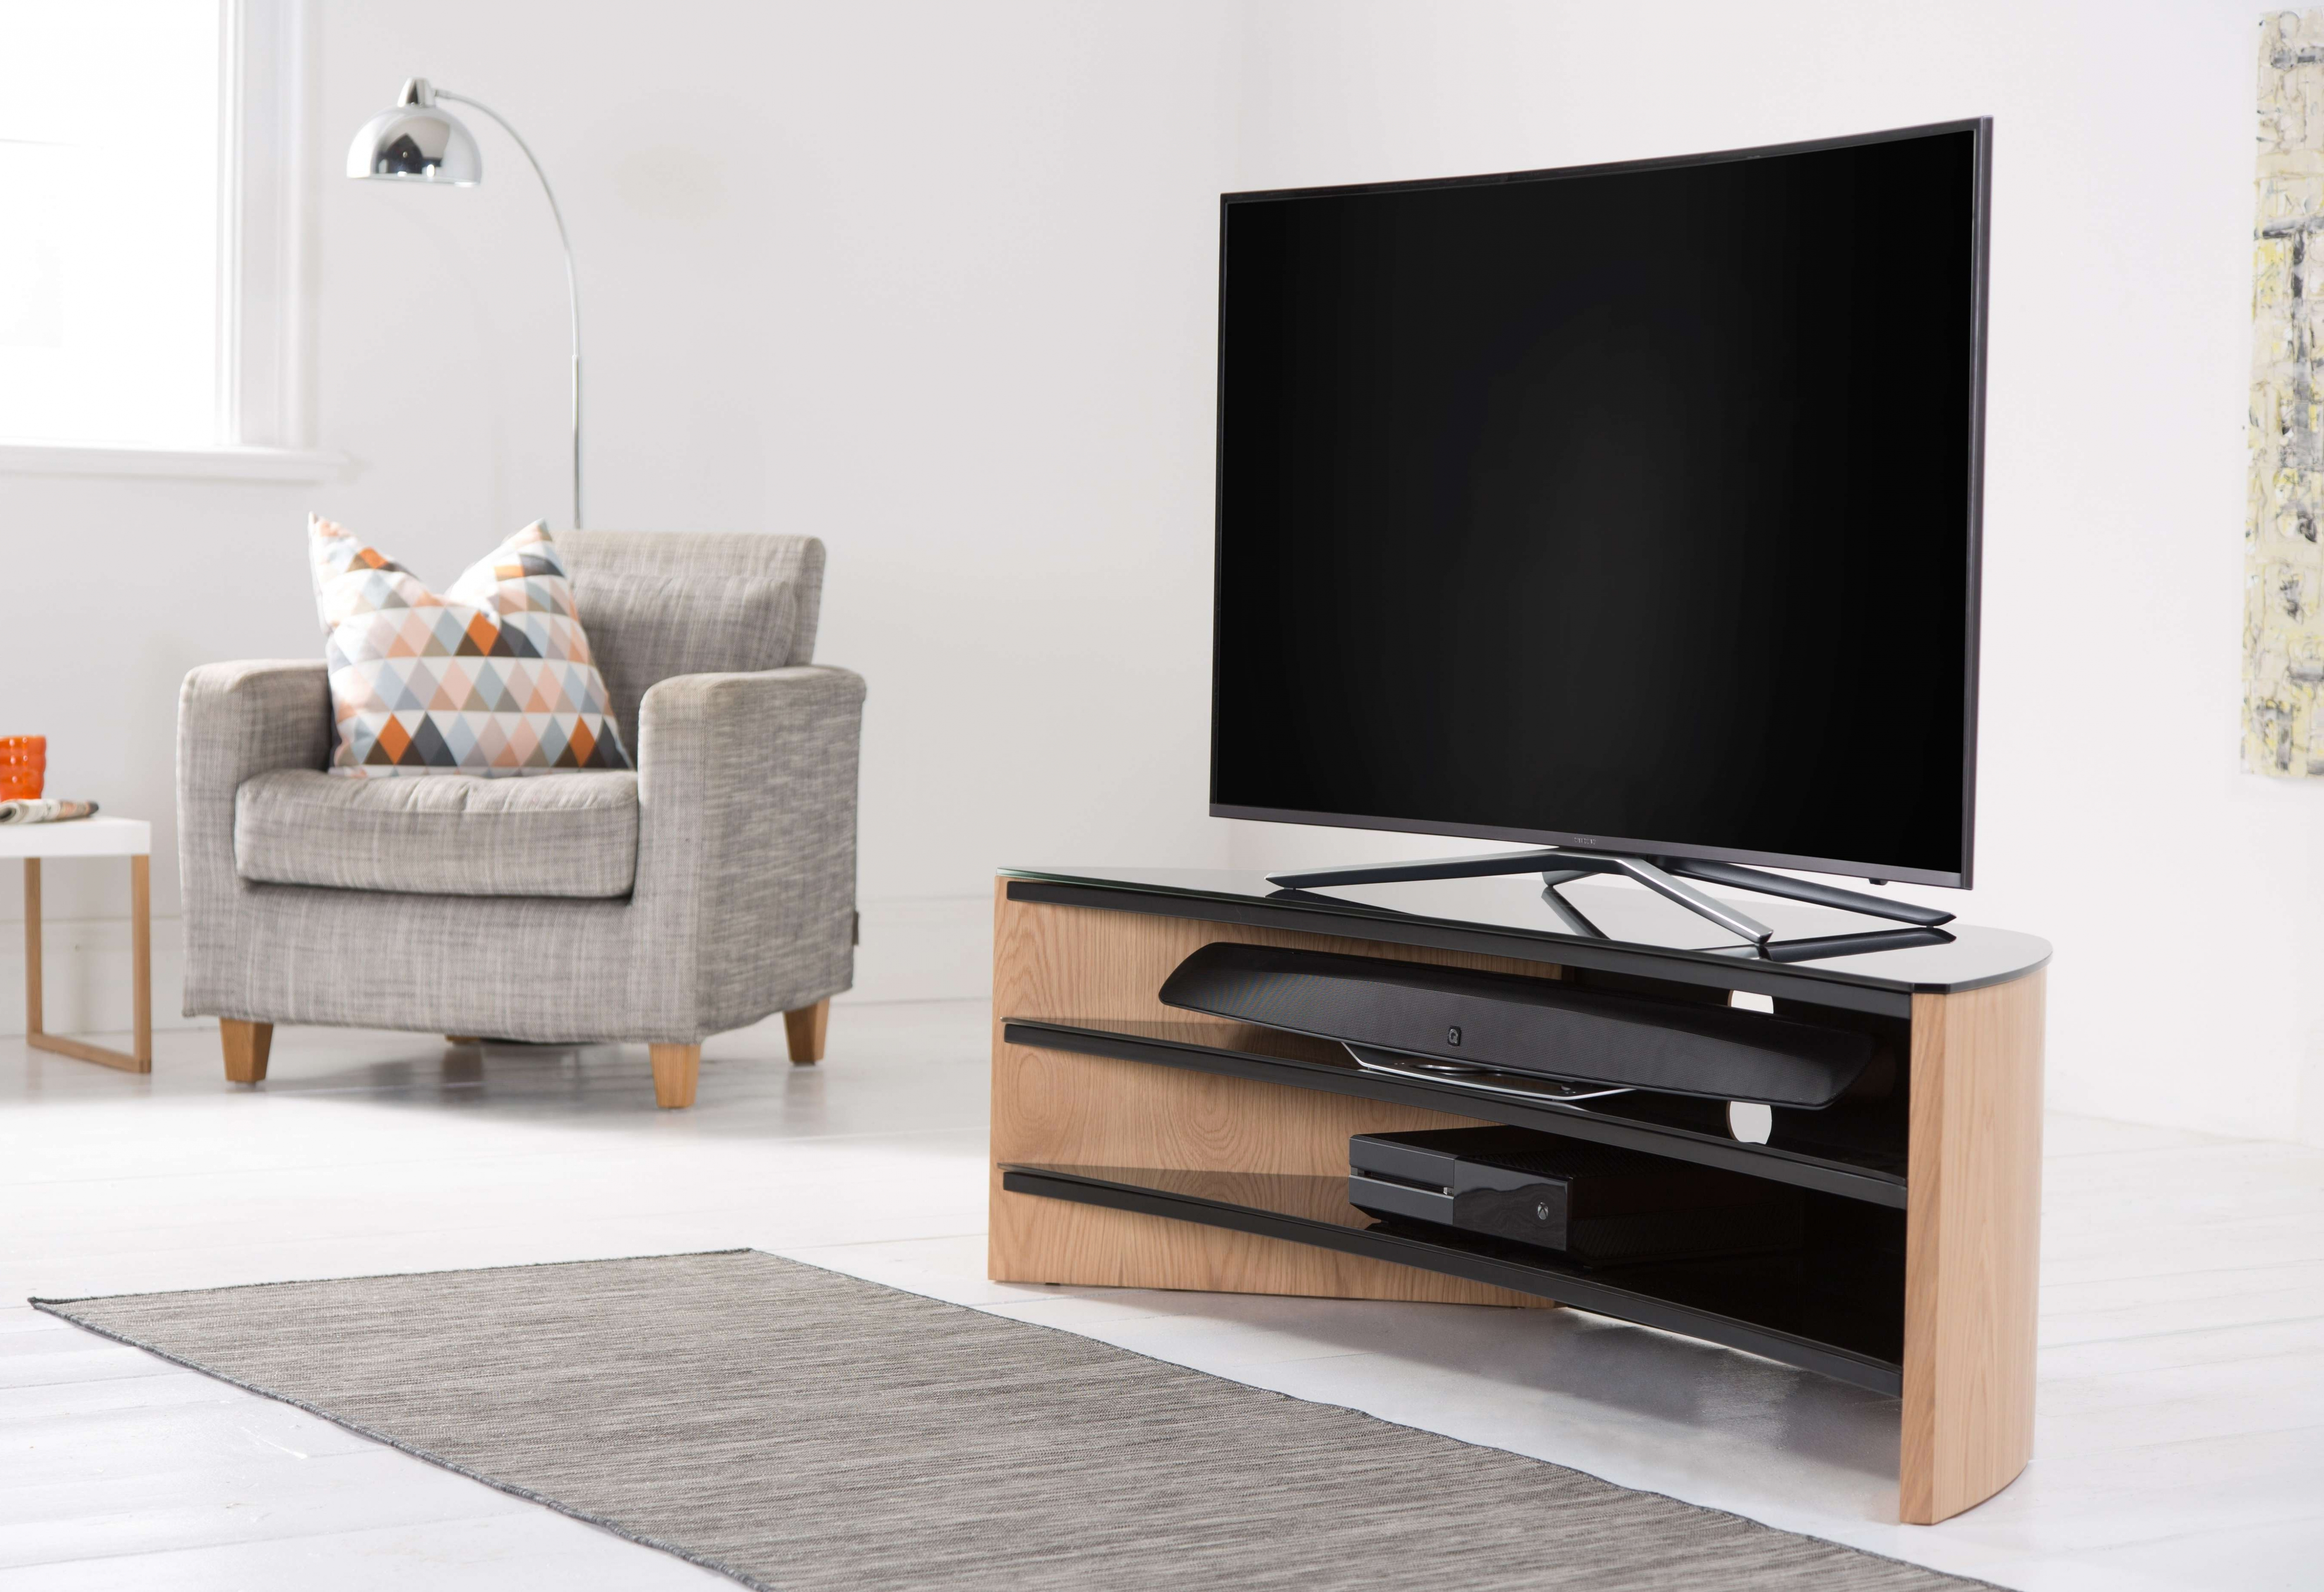 2017 Tv Stands Rounded Corners Intended For Tv Stand Rounded Corners – Round Designs (Gallery 20 of 20)